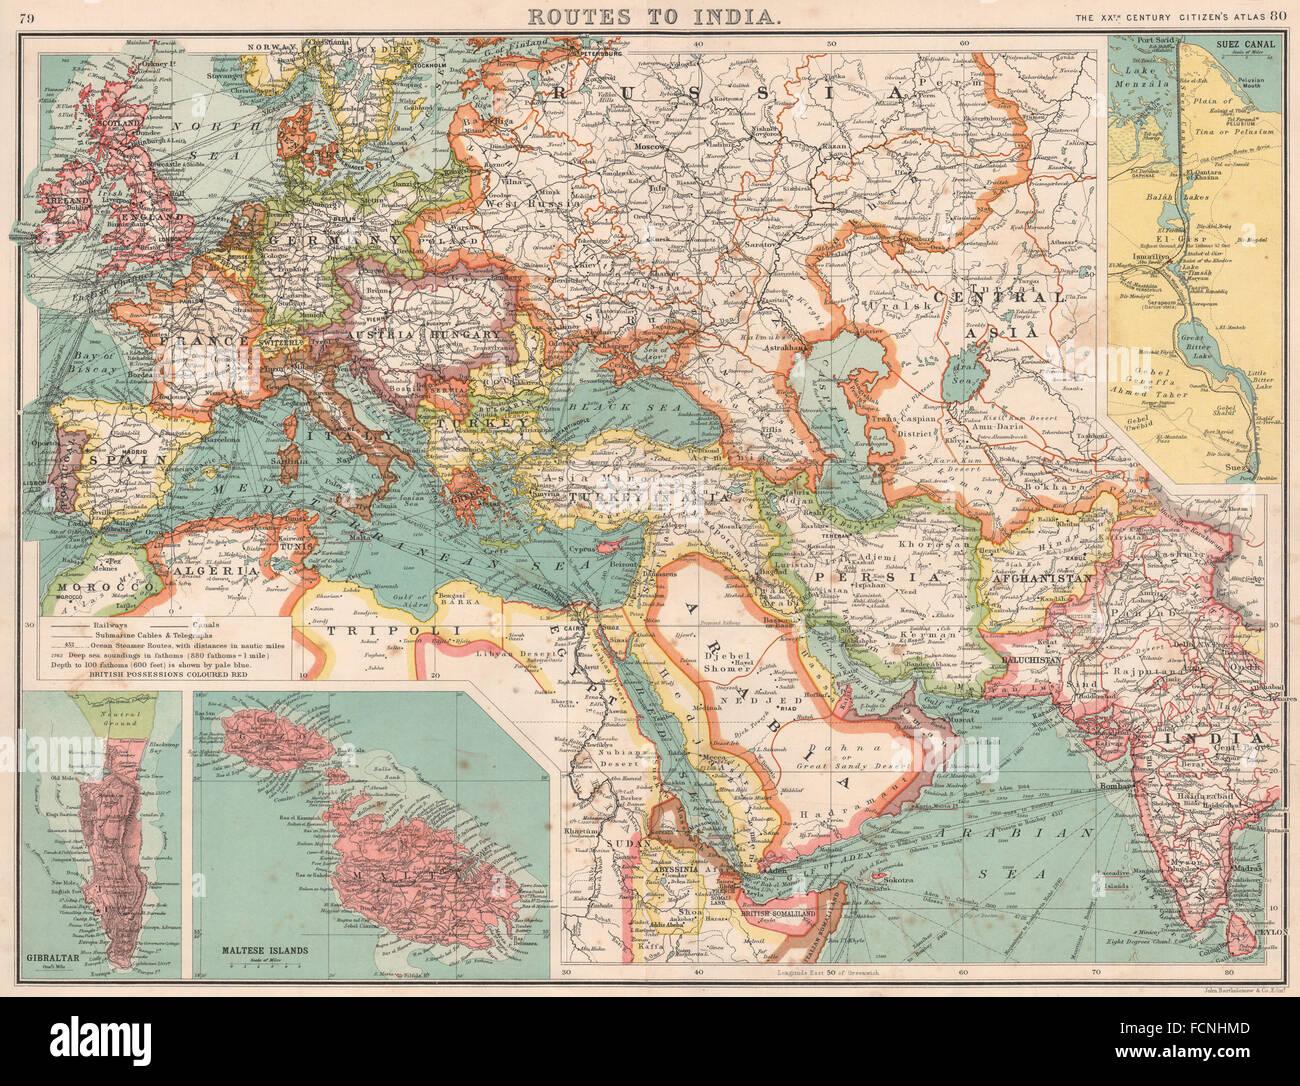 Map Maps Europe Middle East Stock Photos & Map Maps Europe Middle ...